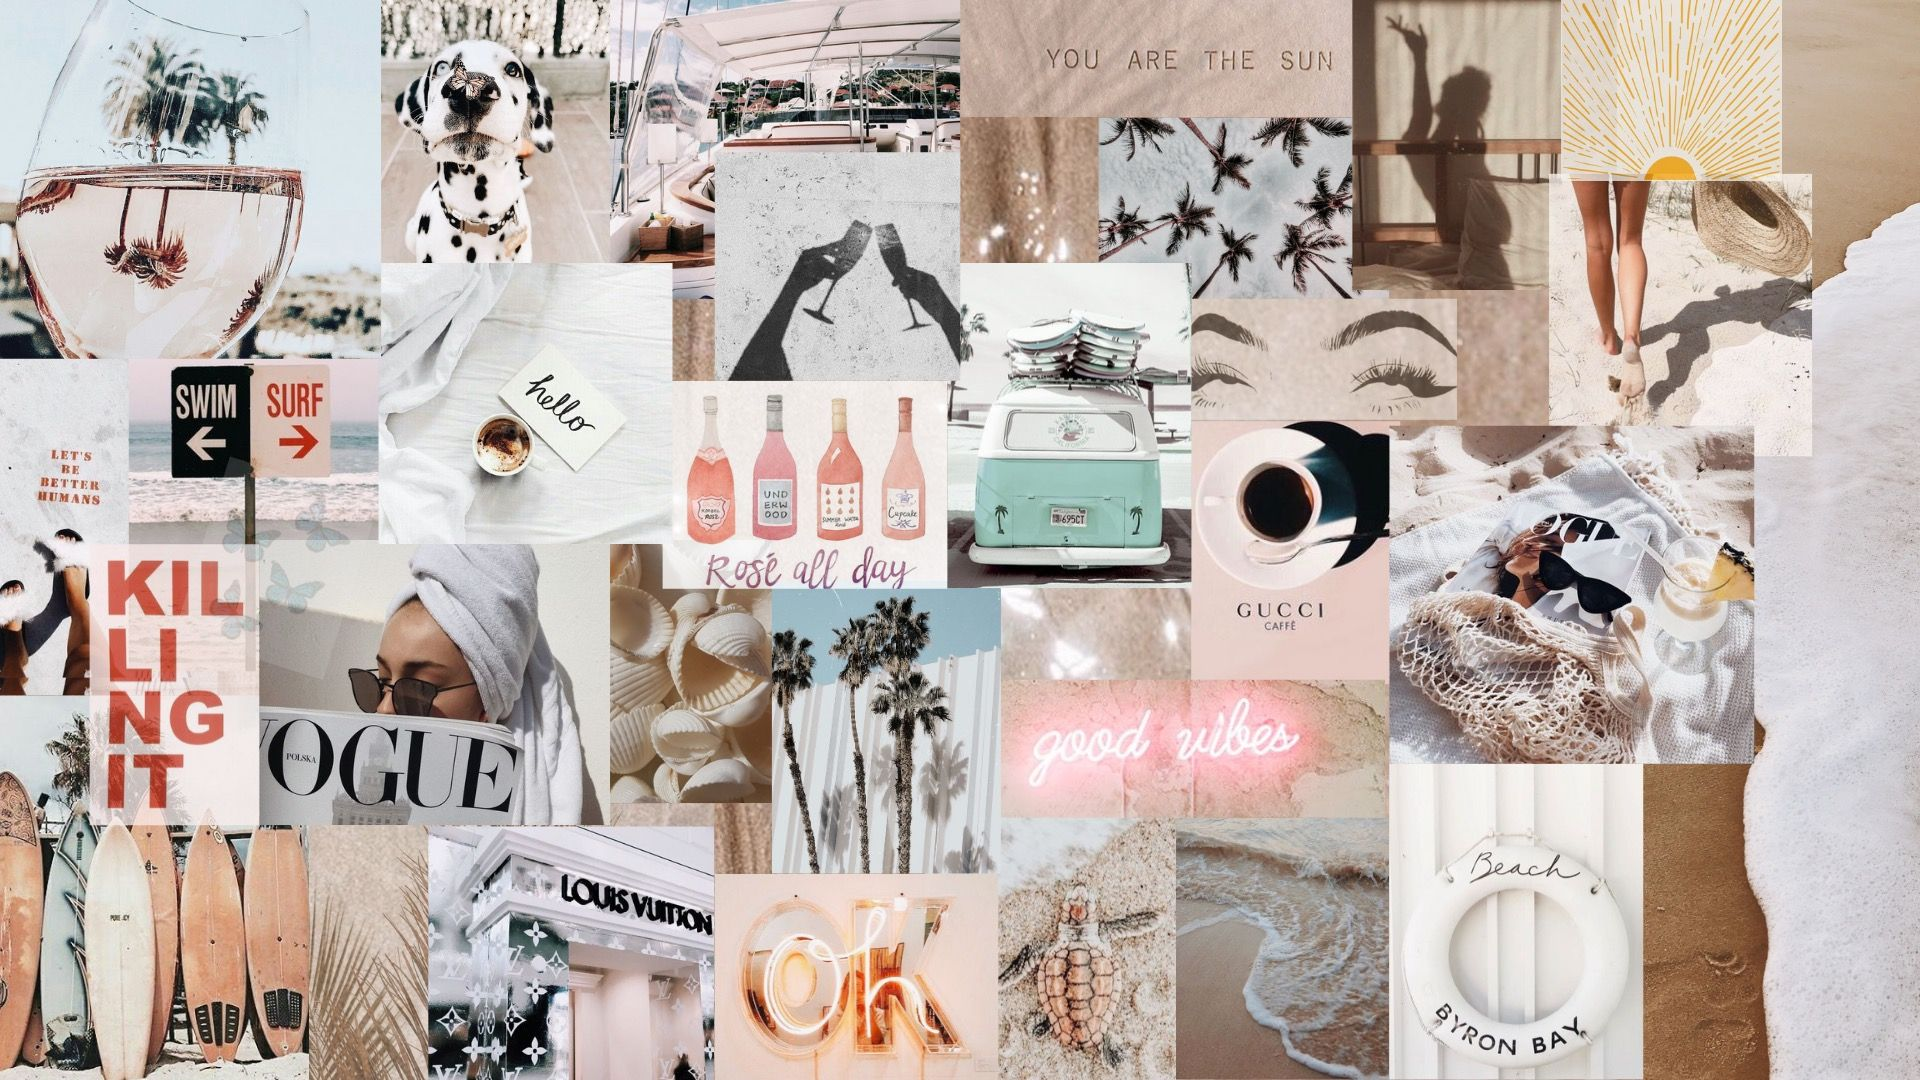 Pin By Sav On Desktop Wallpaper Collages In 2020 Macbook Wallpaper Cute Laptop Wallpaper Laptop Wallpaper